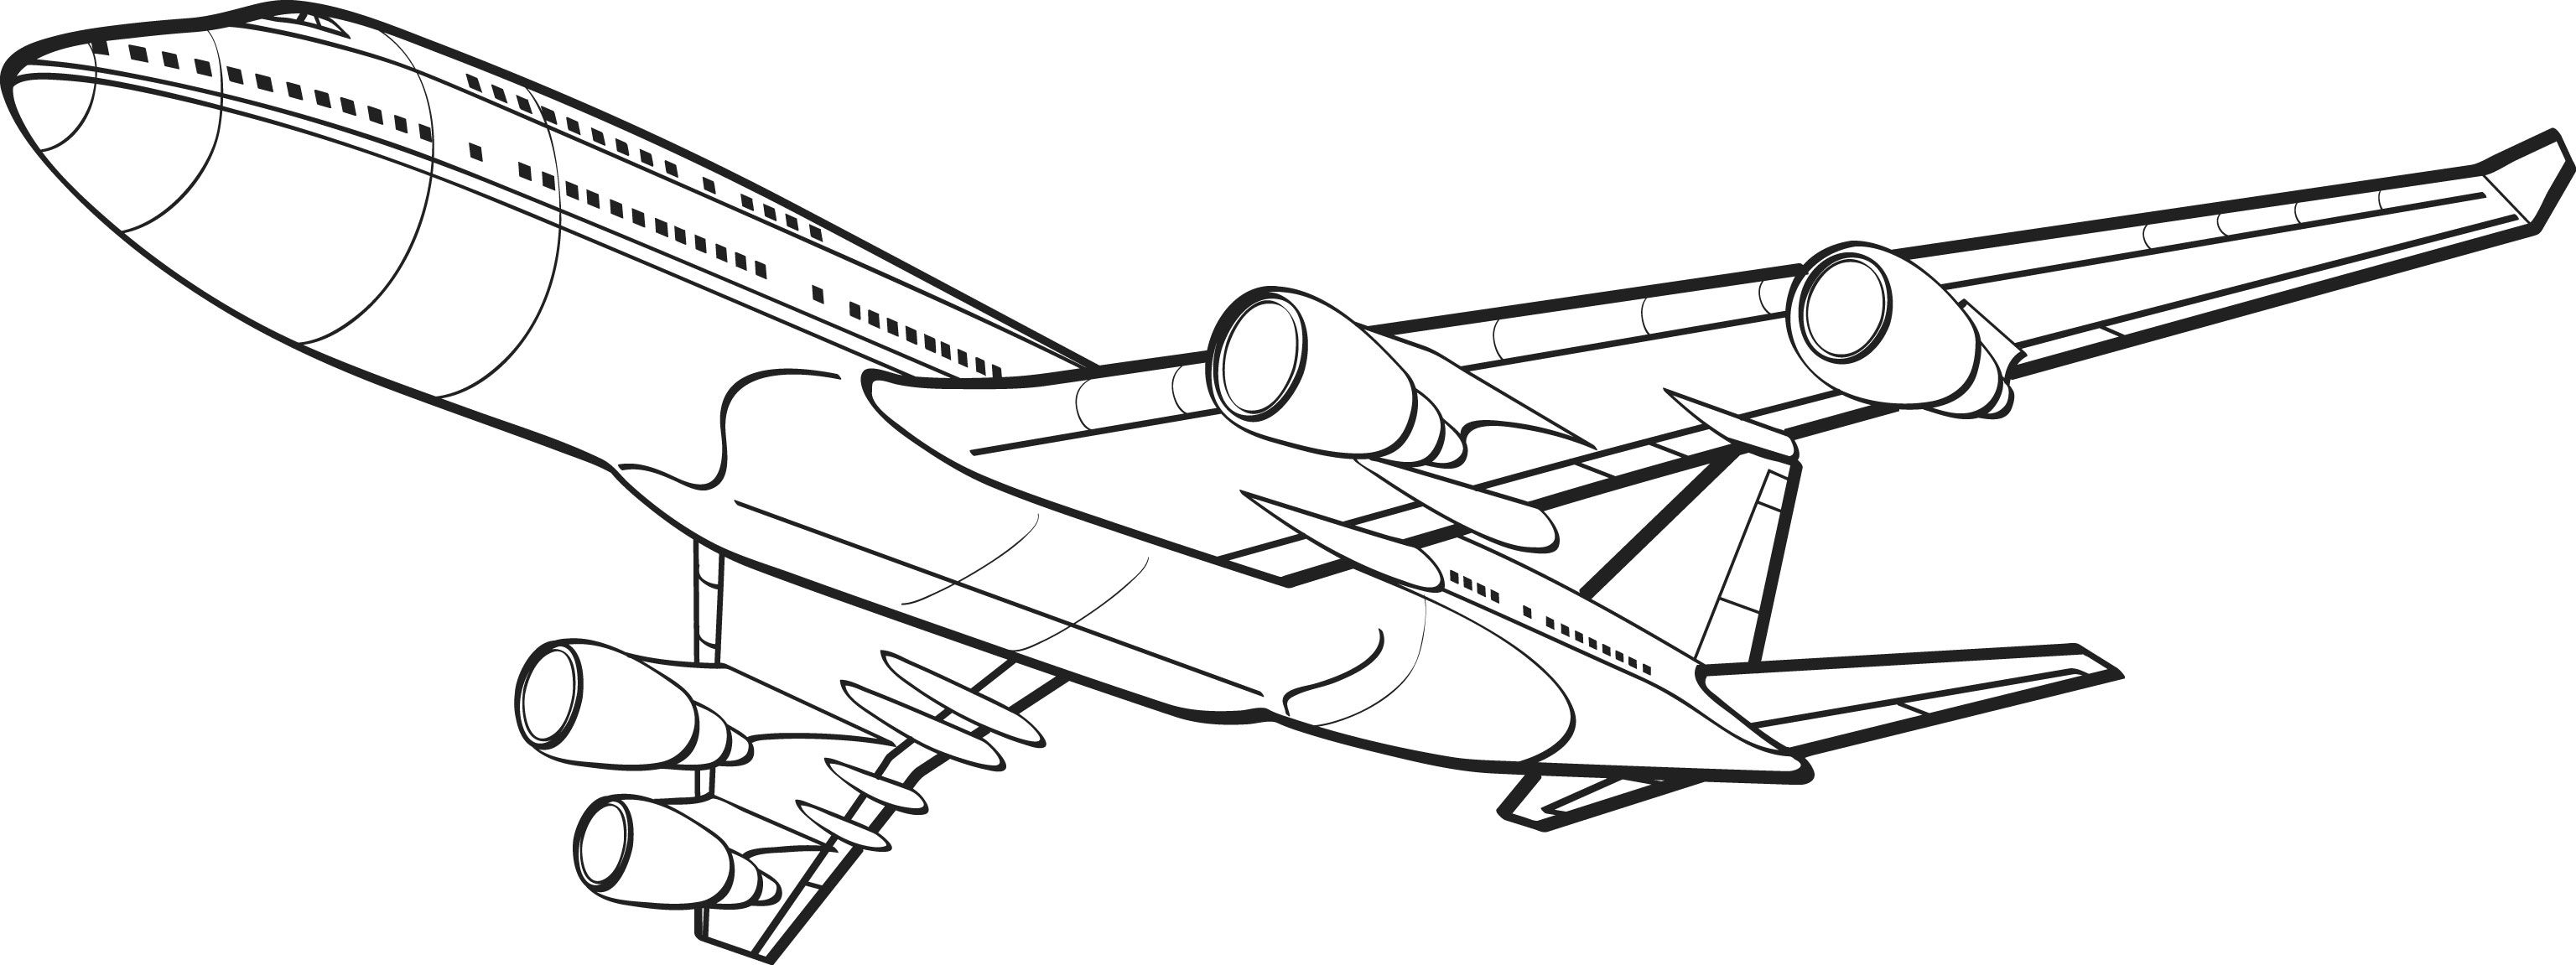 Boing 747 bottom coloring page